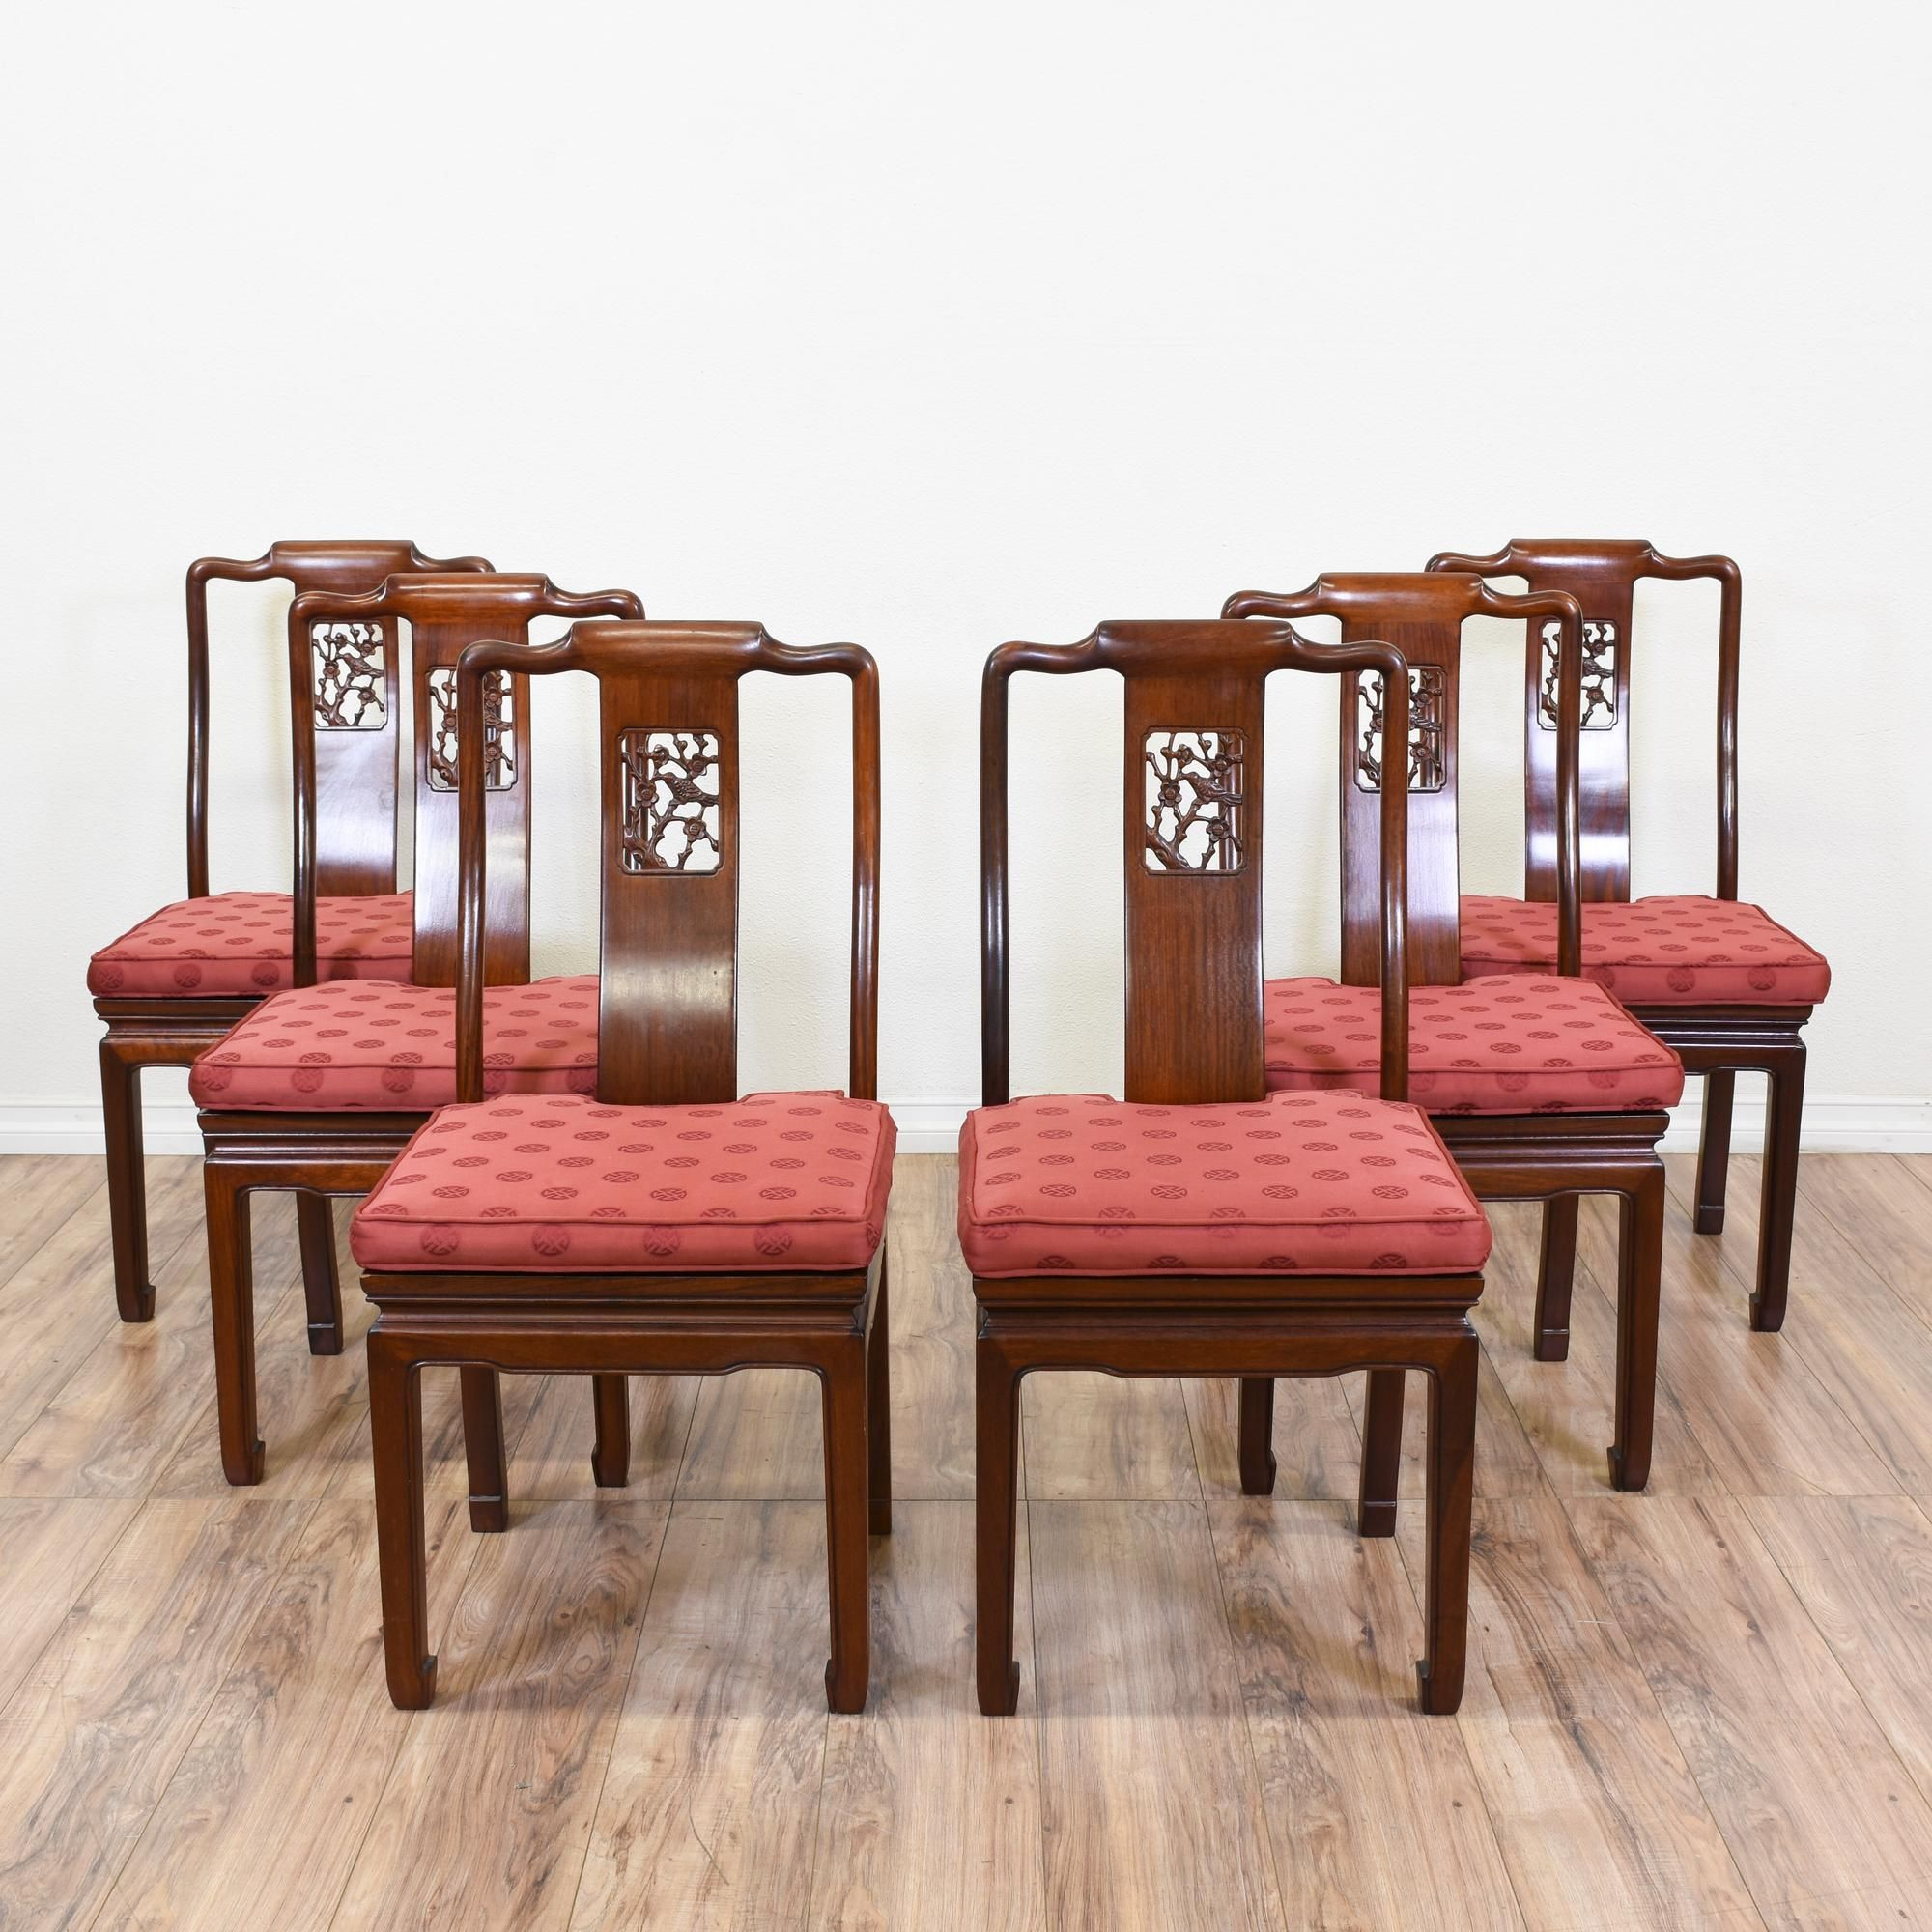 Charmant This Set Of 6 Asian Inspired Dining Chairs Are Featured In A Solid Wood  With A Glossy Rosewood Finish. These Chairs Are In Good Condition With  Intricate ...